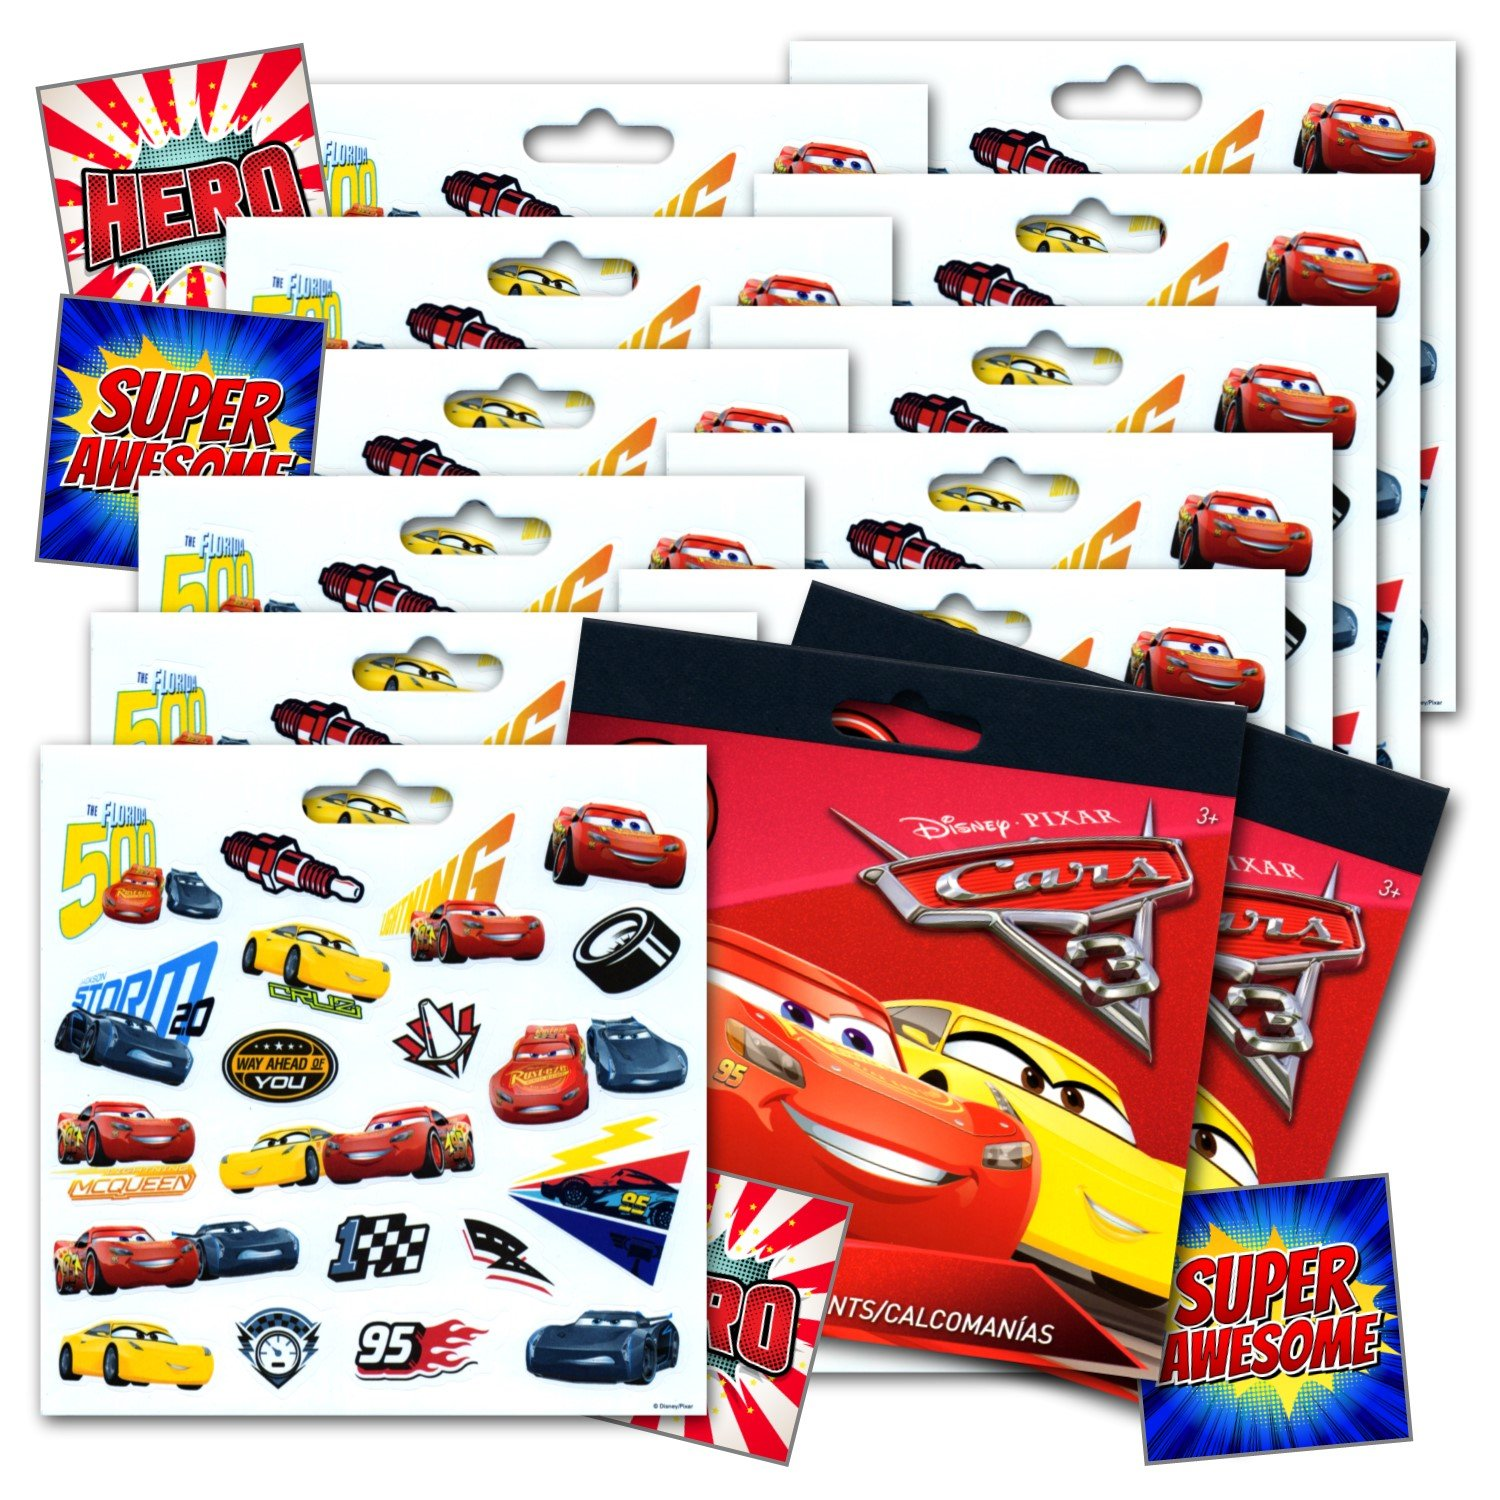 Disney CARS 3 Movie Cars Stickers Party Favors Bundle of 12 Sheets 240 Stickers plus 2 Specialty Stickers